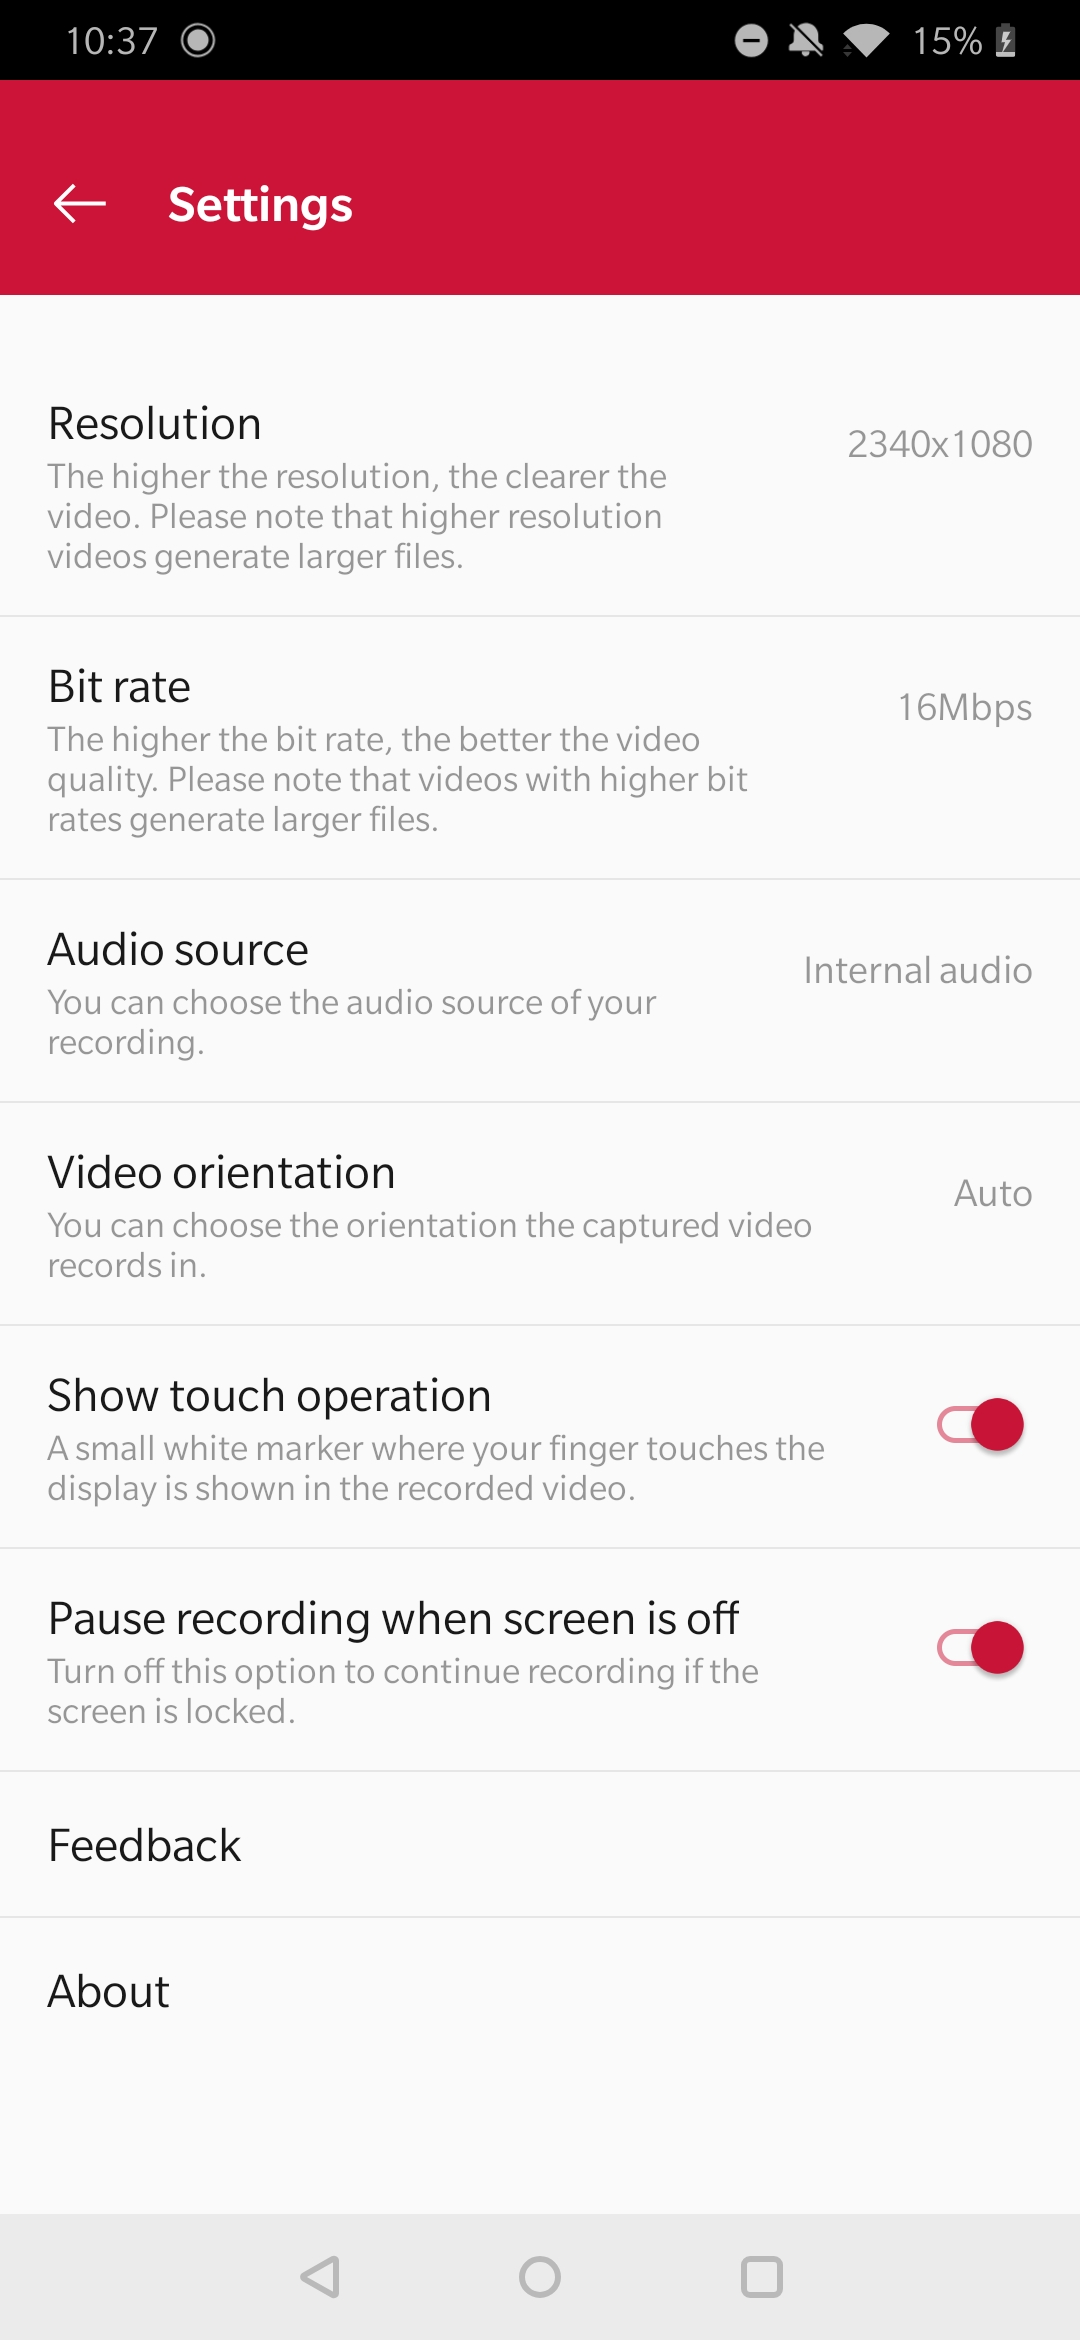 Internal audio recorder apk hack | ЕНТ, ПГК, гранты, стипендии, ВУЗы